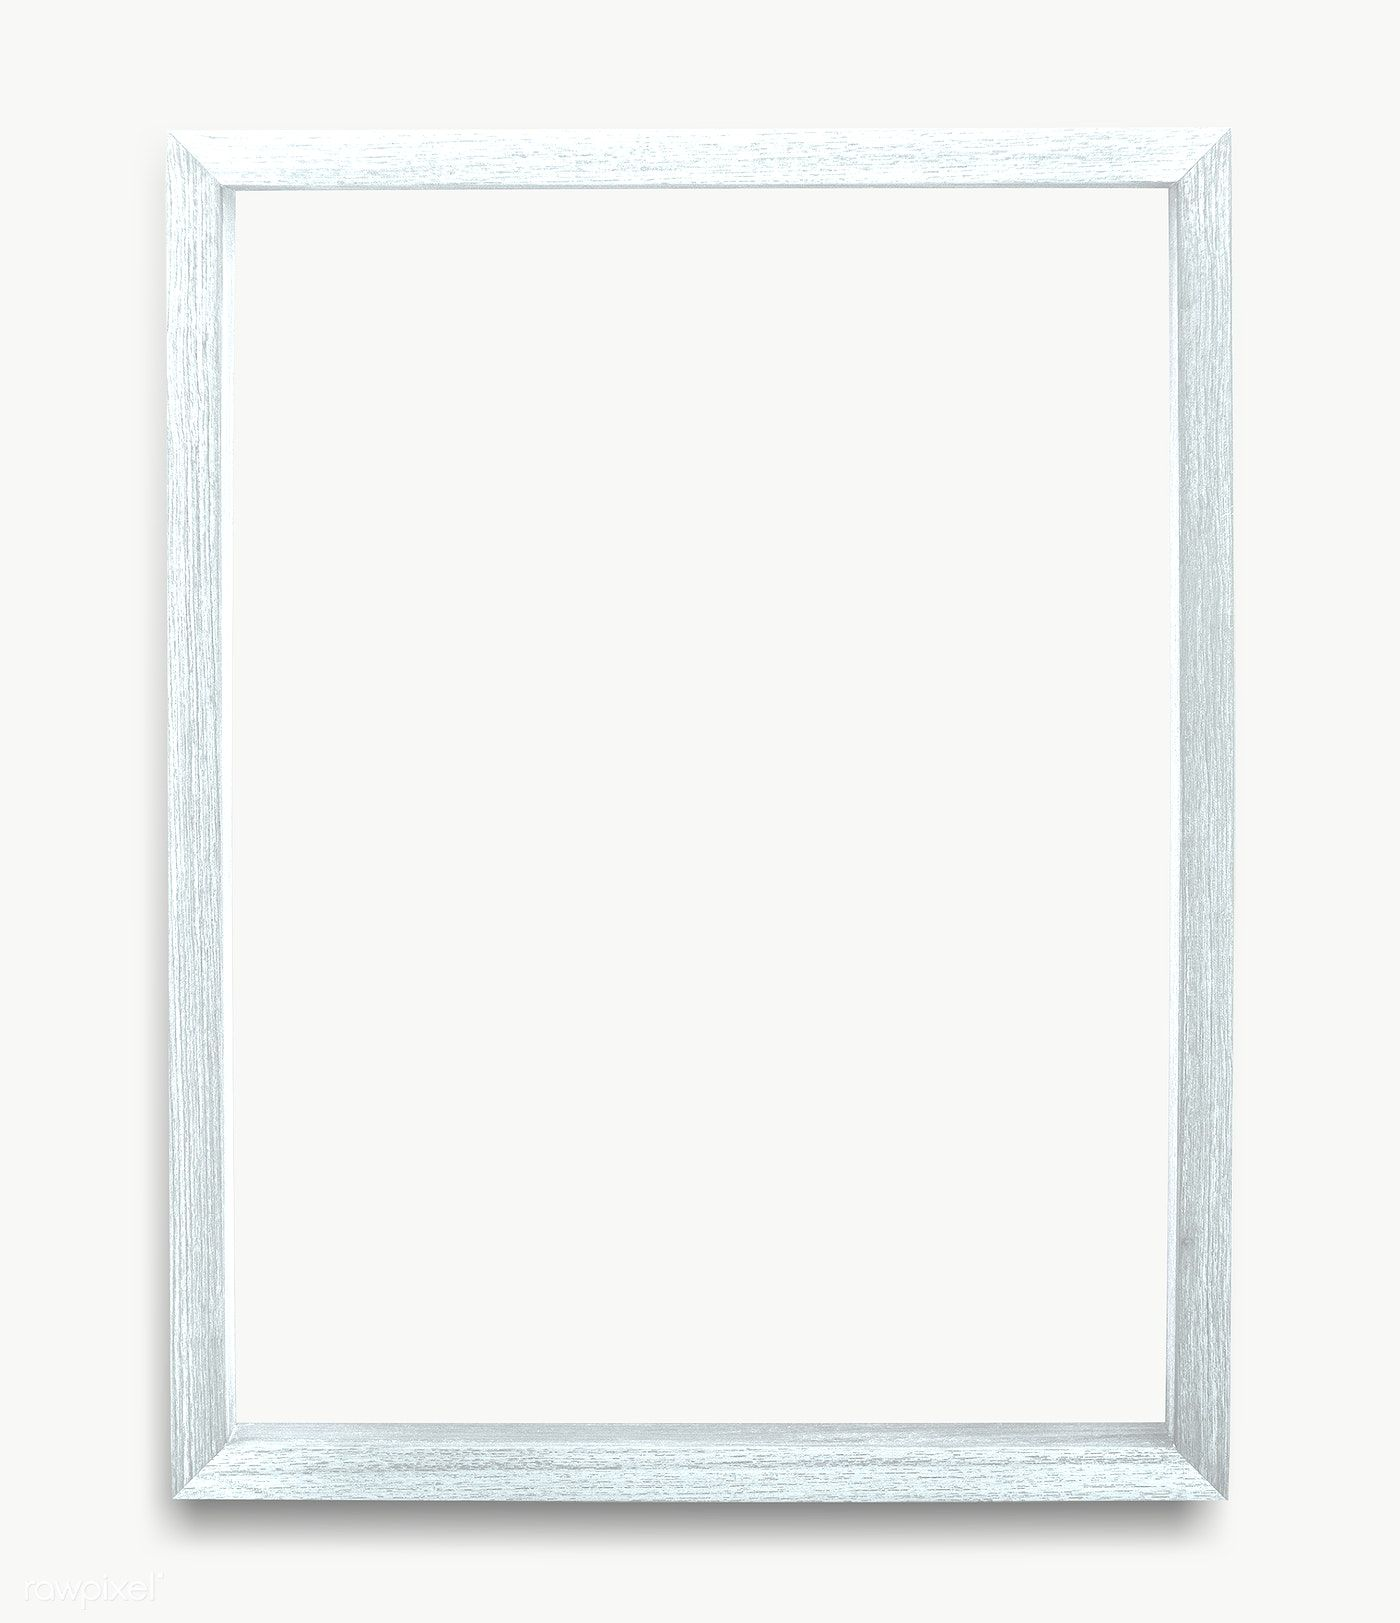 Download Premium Png Of White Photo Frame Mockup 2021738 Frame Mockups White Photo Frames Frame